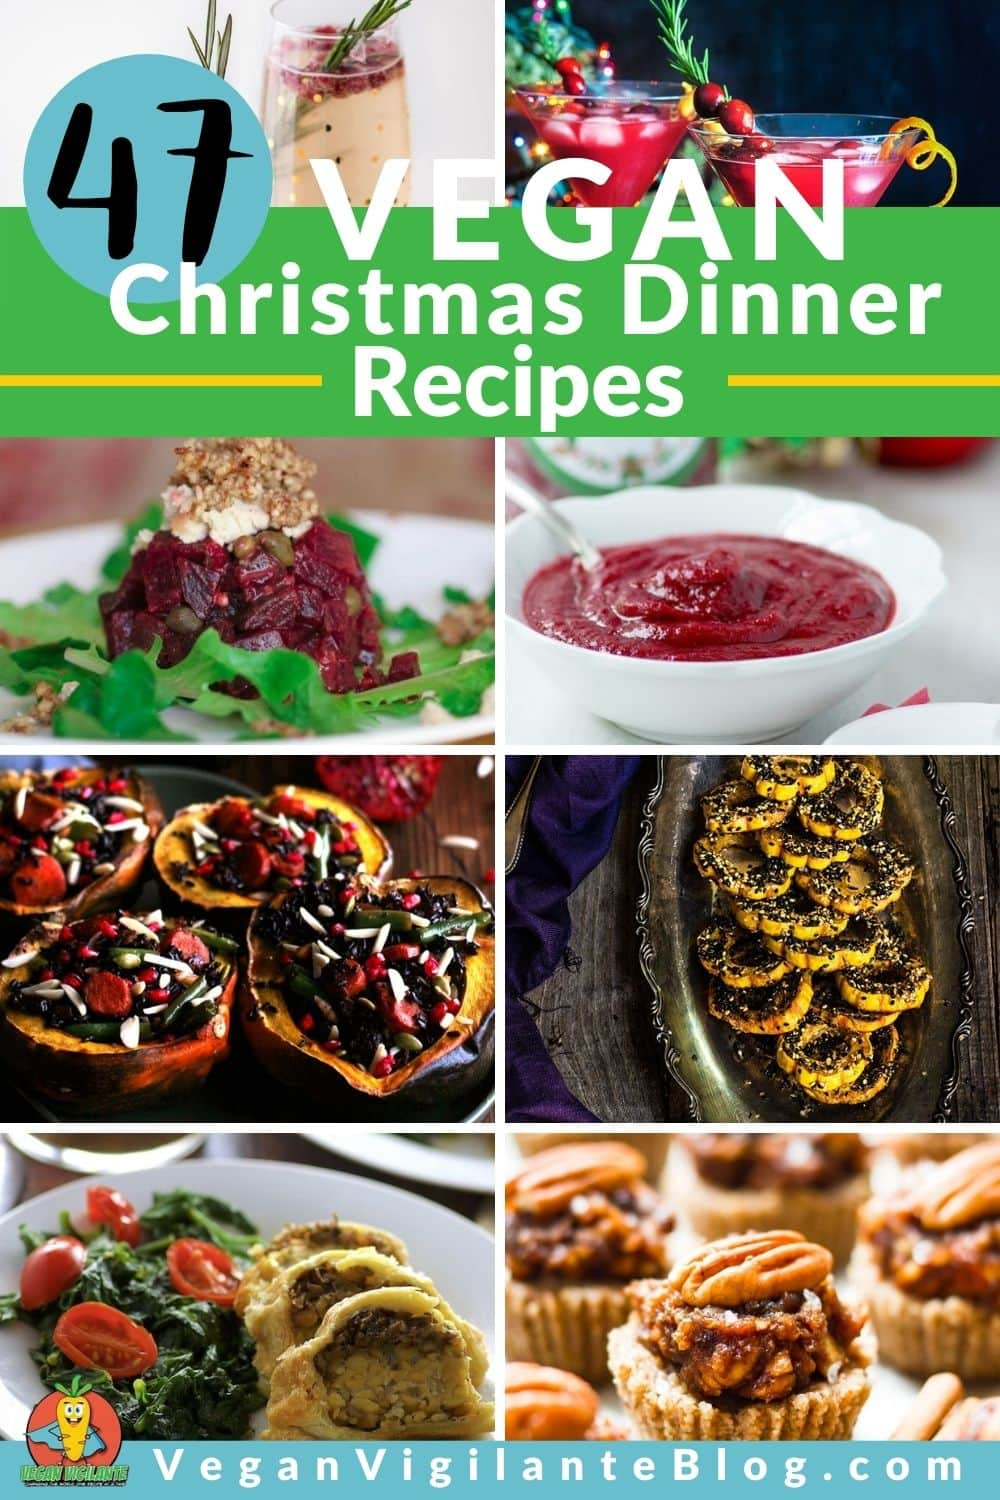 Collage of 47 Vegan Christmas Recipes for Pinterest